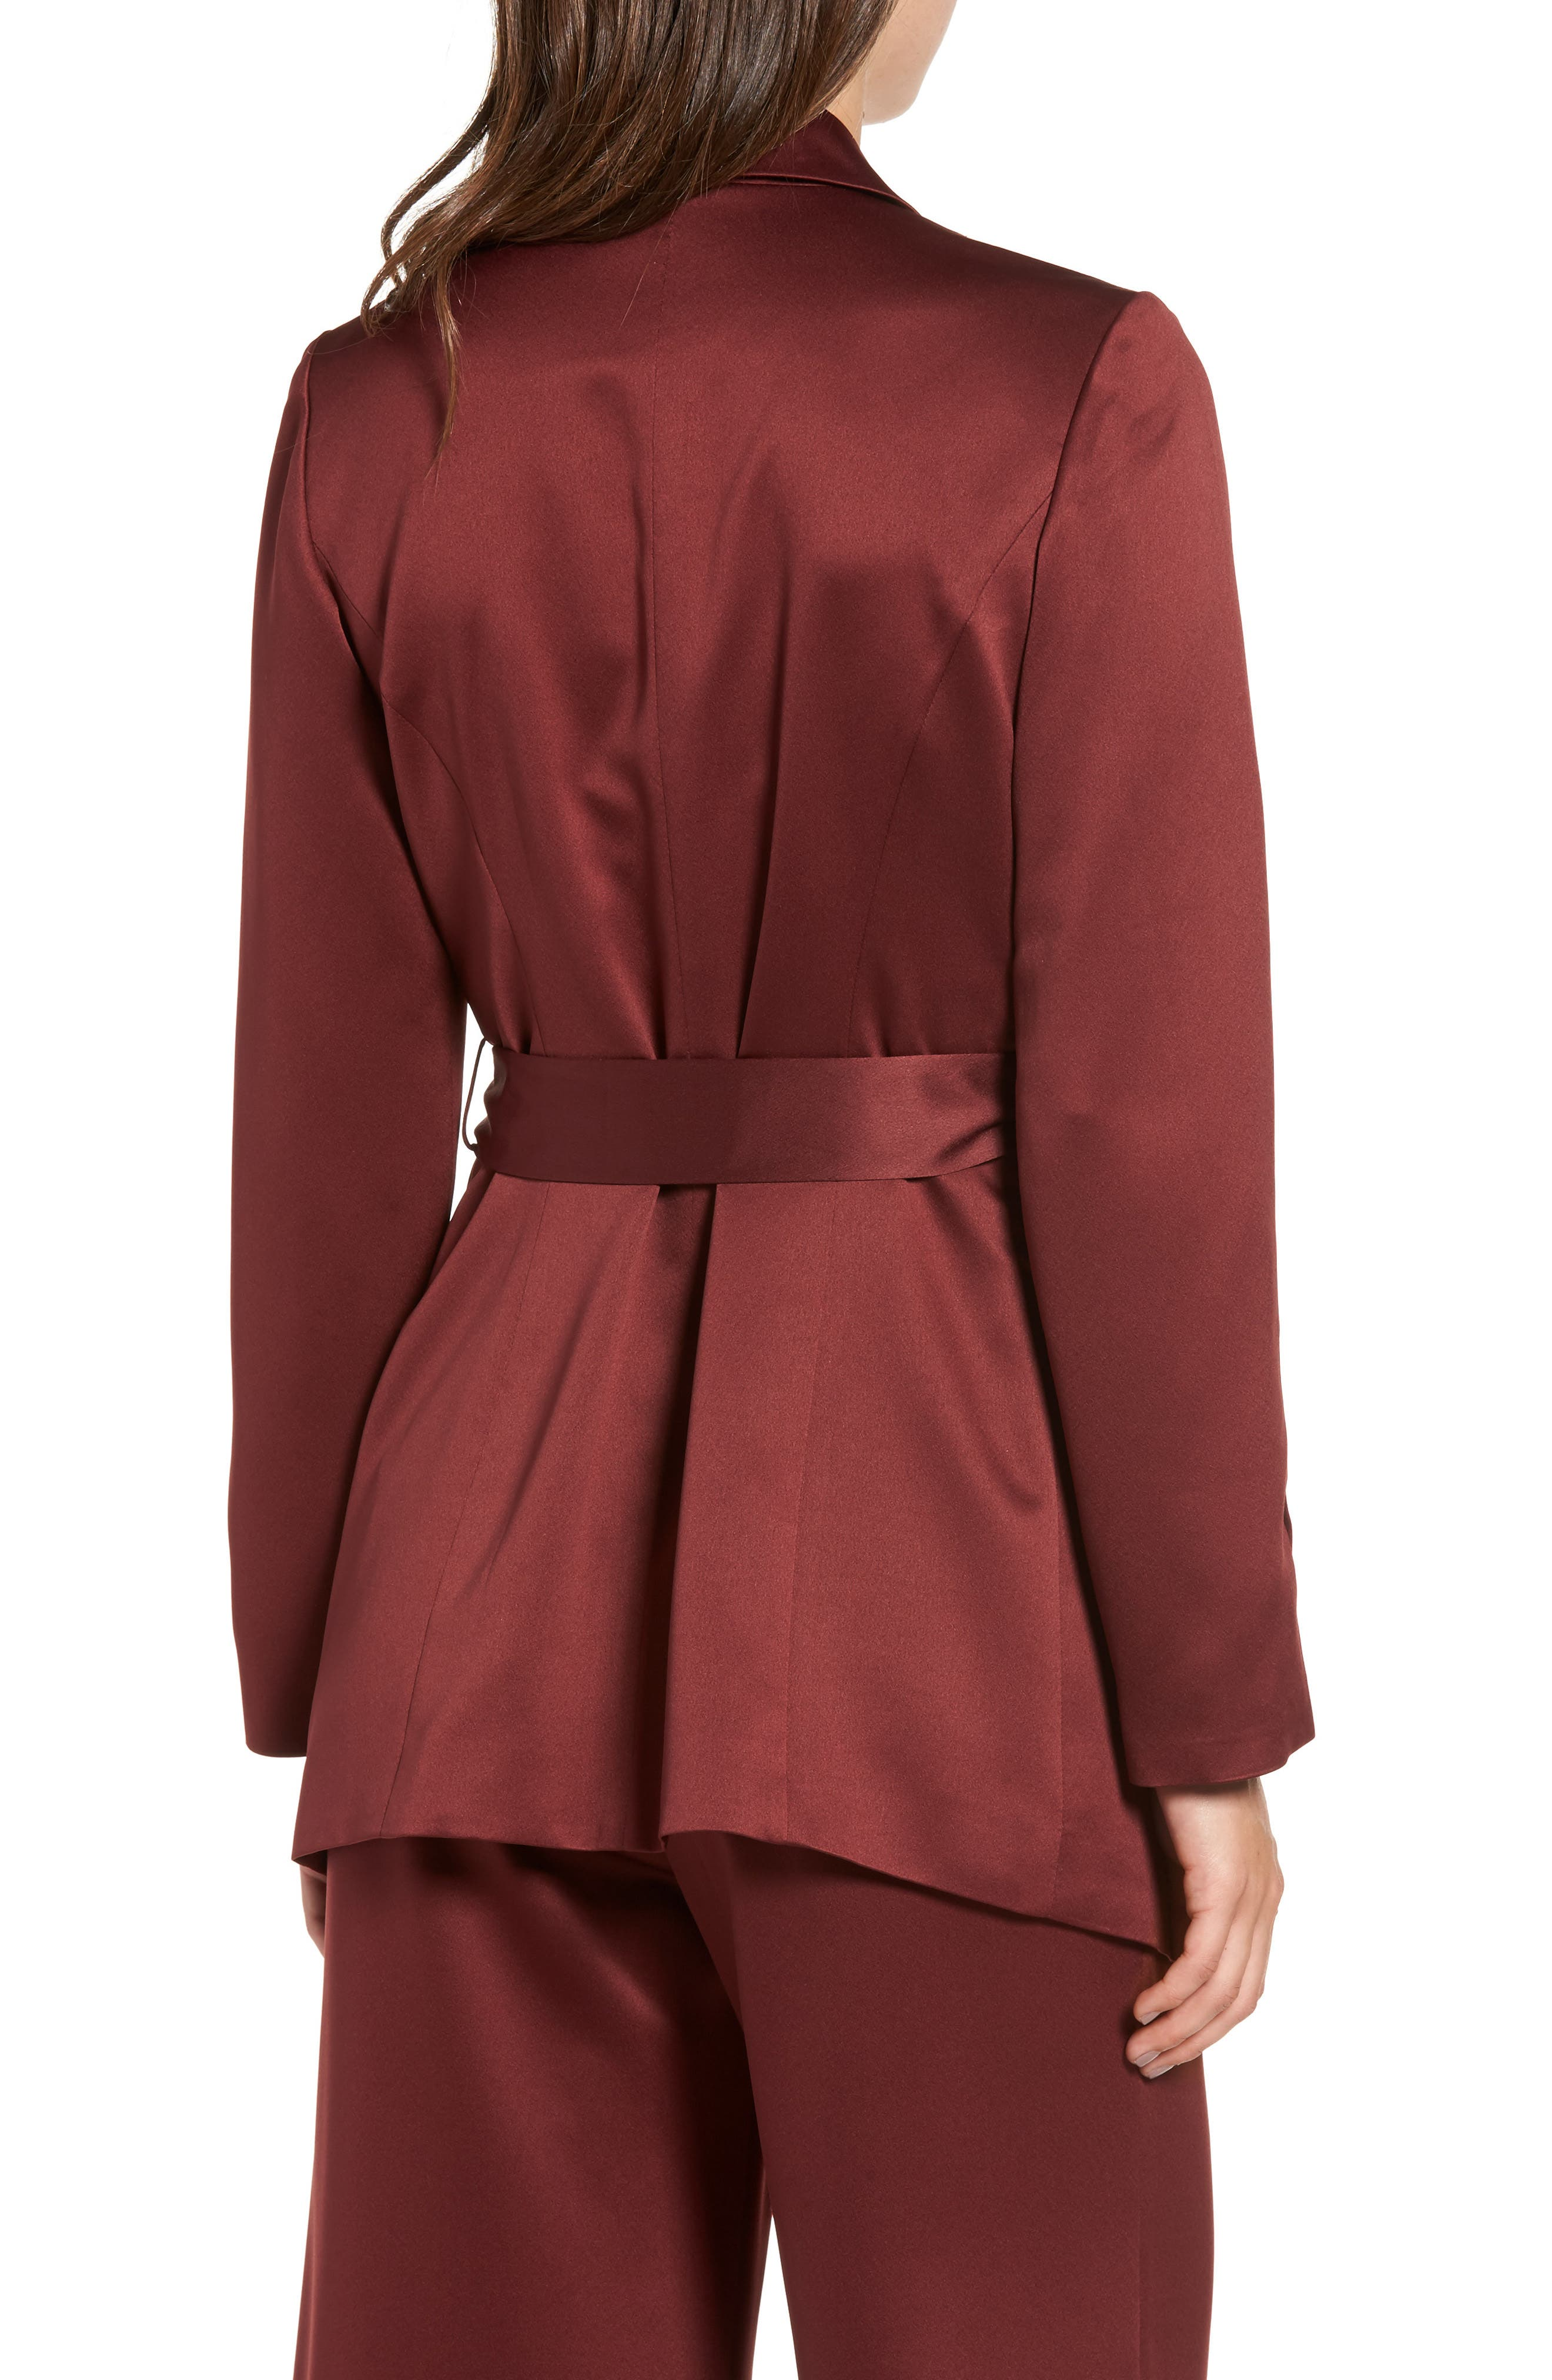 LEITH, Belted Satin Jacket, Alternate thumbnail 2, color, 601